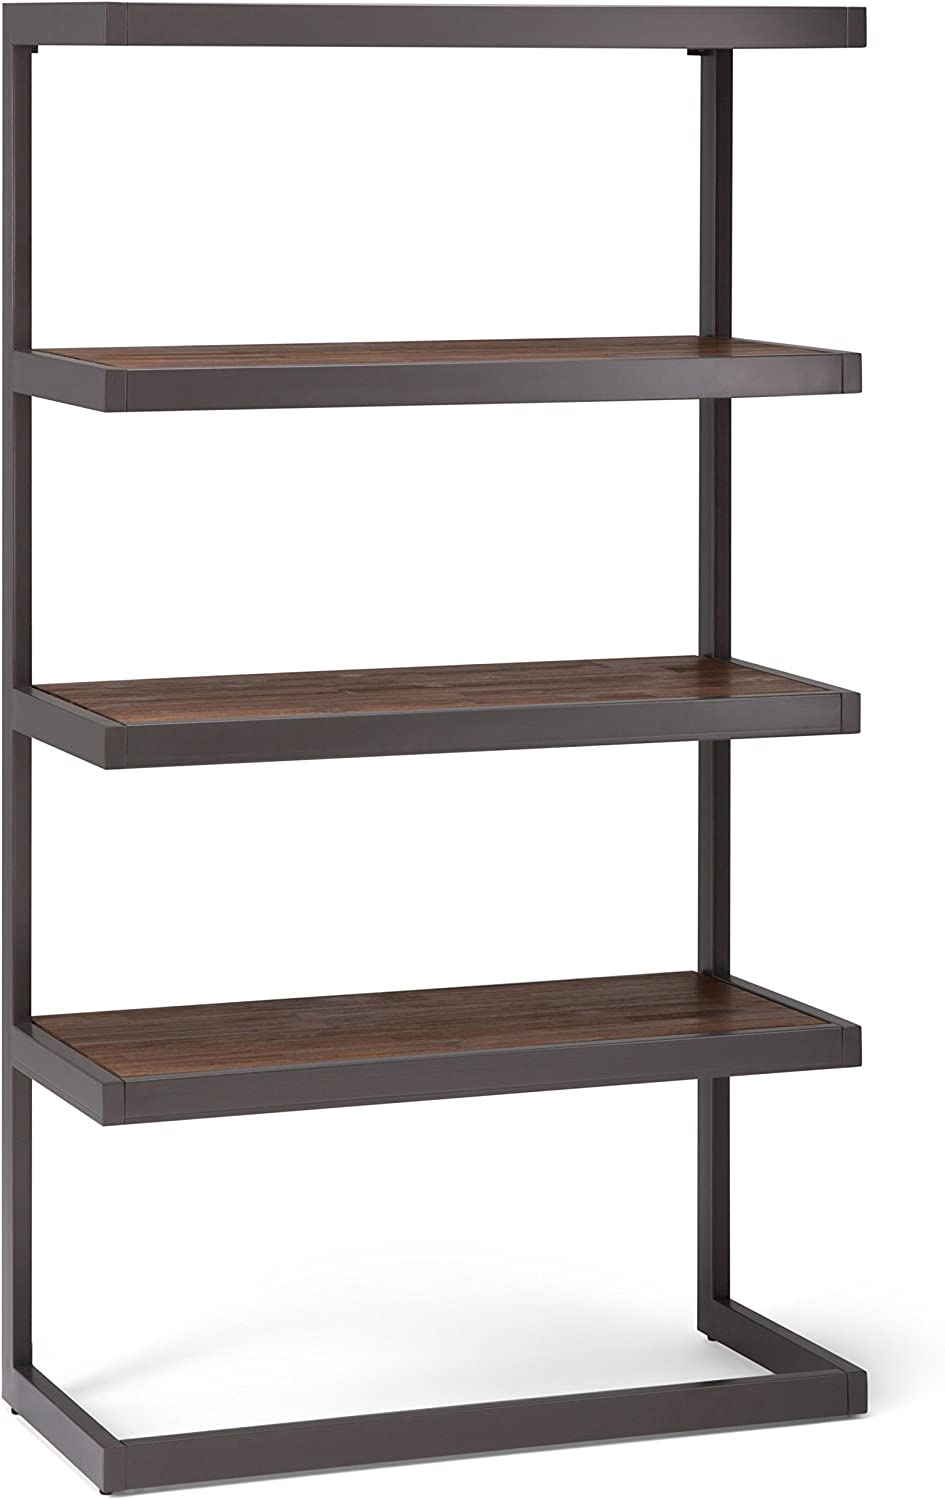 Simpli Home AXCERN-12 Erina Solid Acacia Wood and Metal 66 inch x 36 inch Modern Industrial Bookcase in Rustic Natural Aged Brown